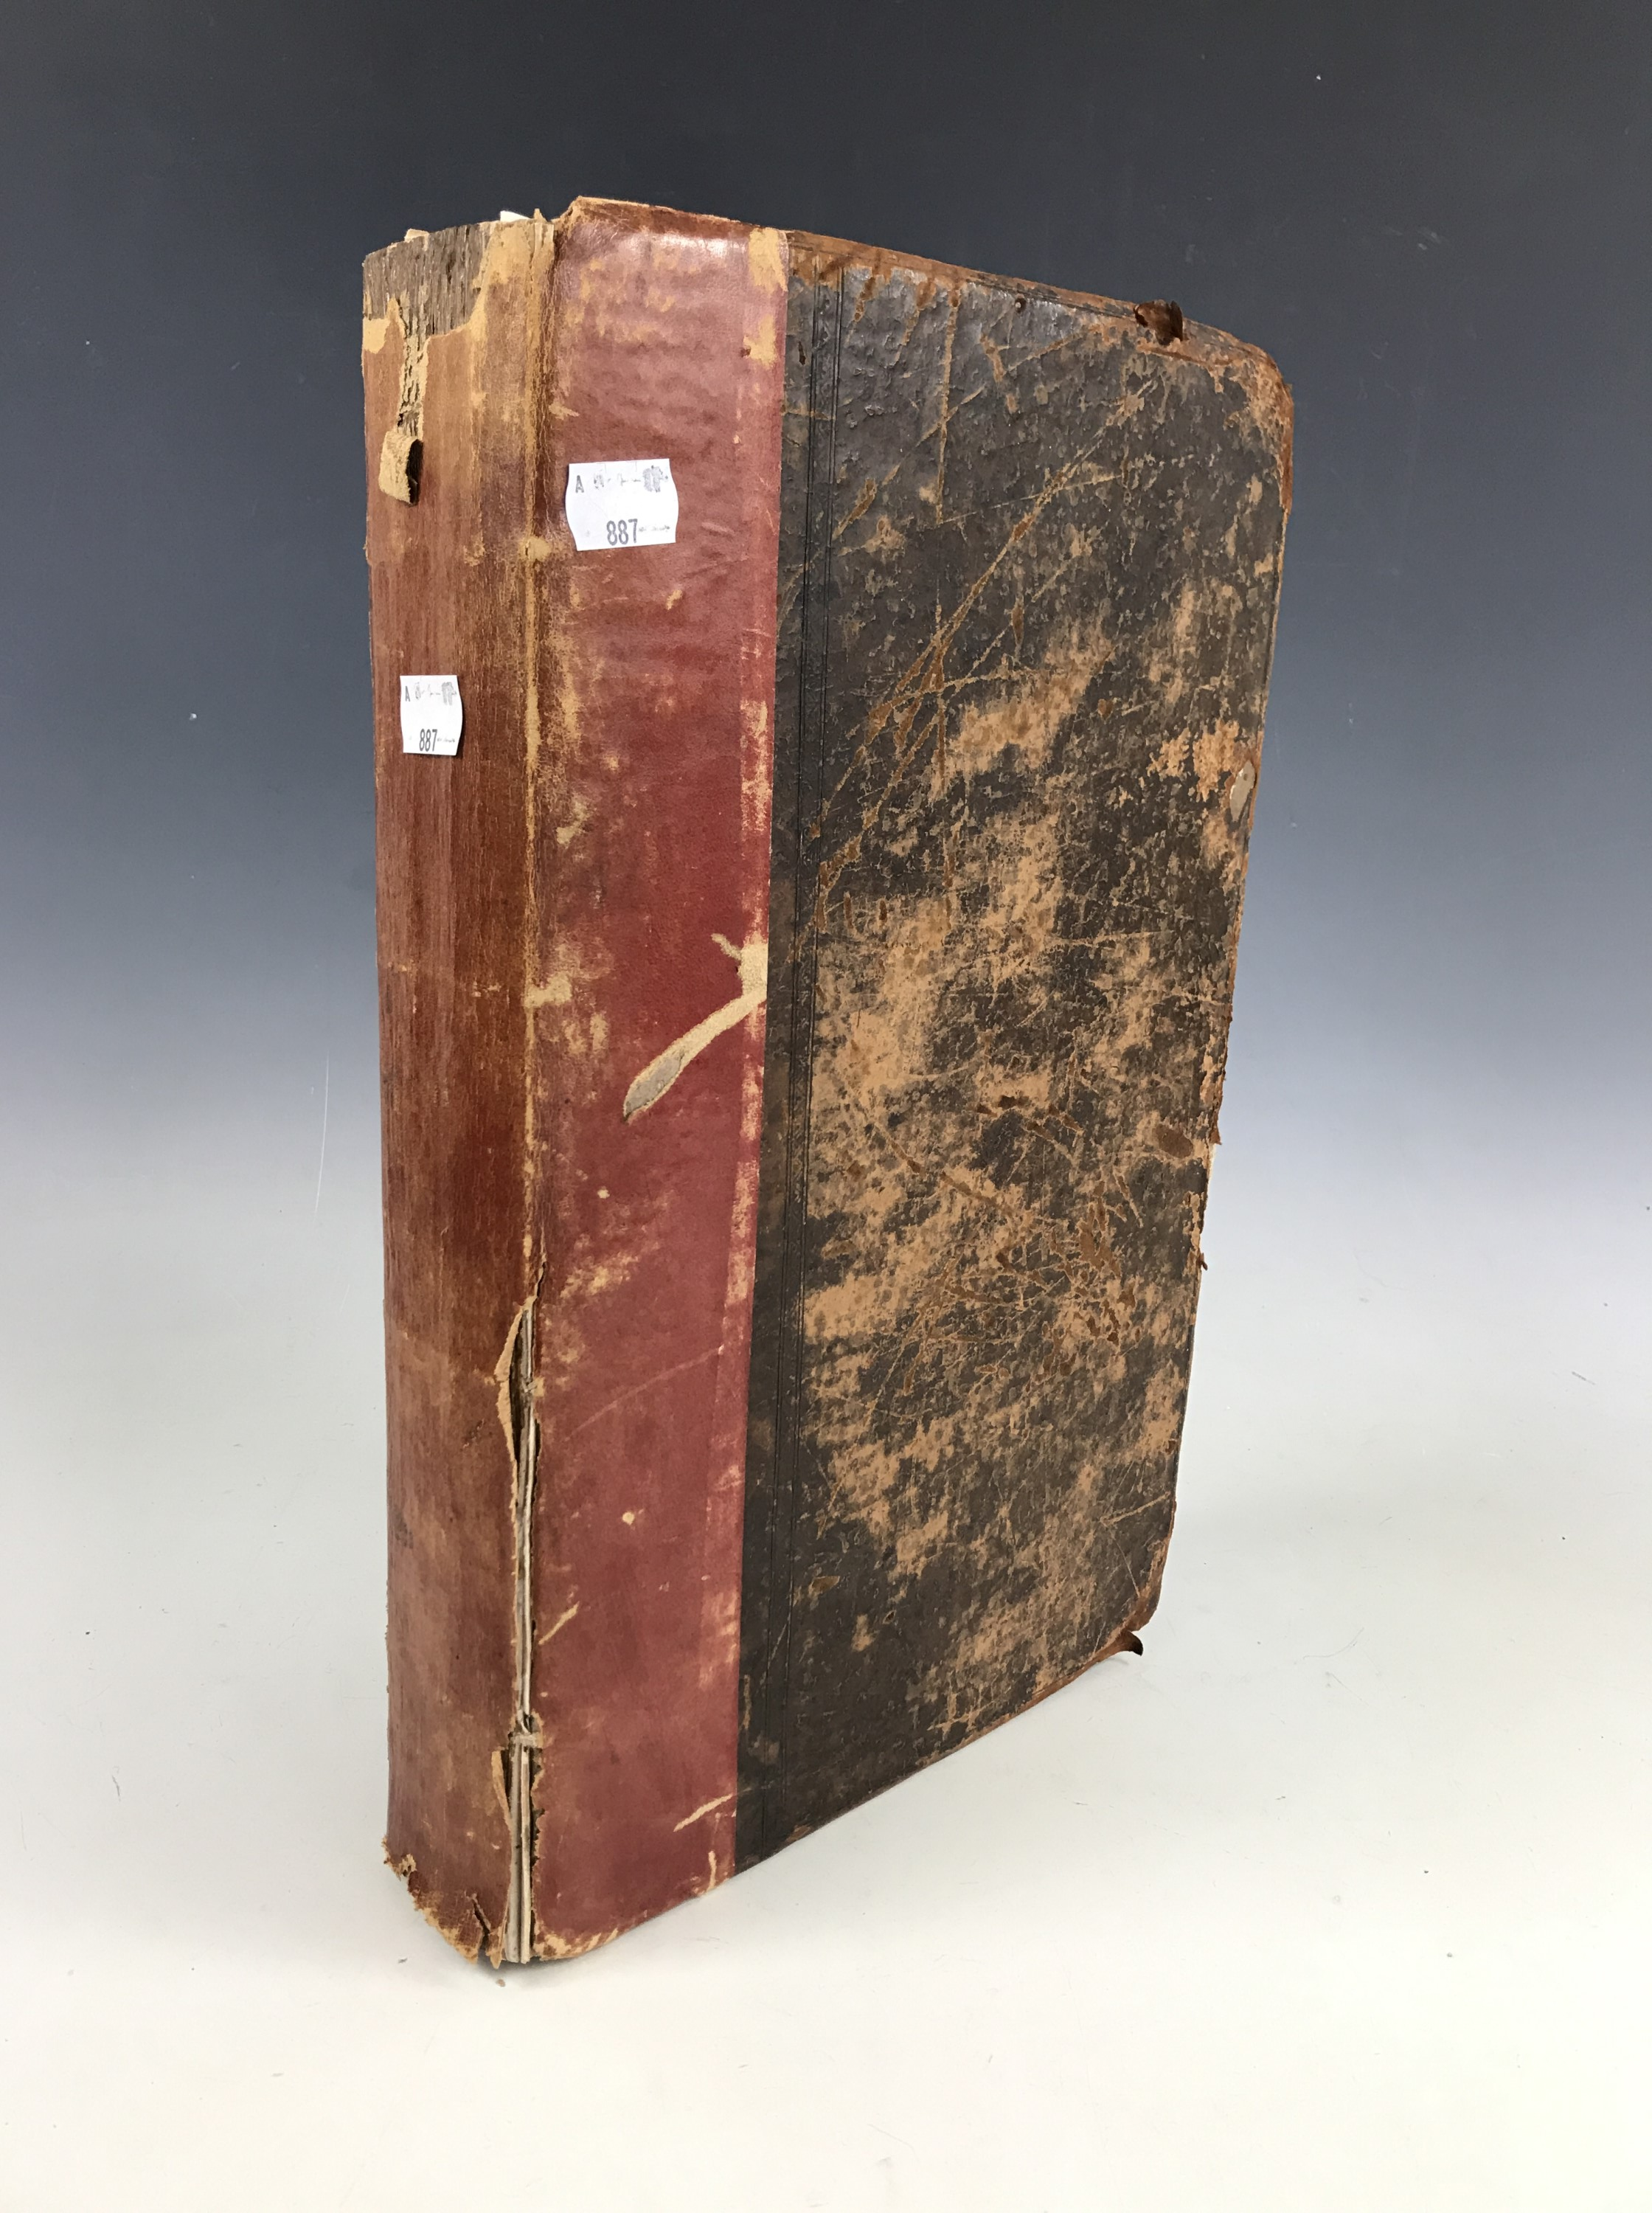 Lot 40 - John Fox, The Third Volume of the Ecclesiastical History containing the Acts and Monuments of